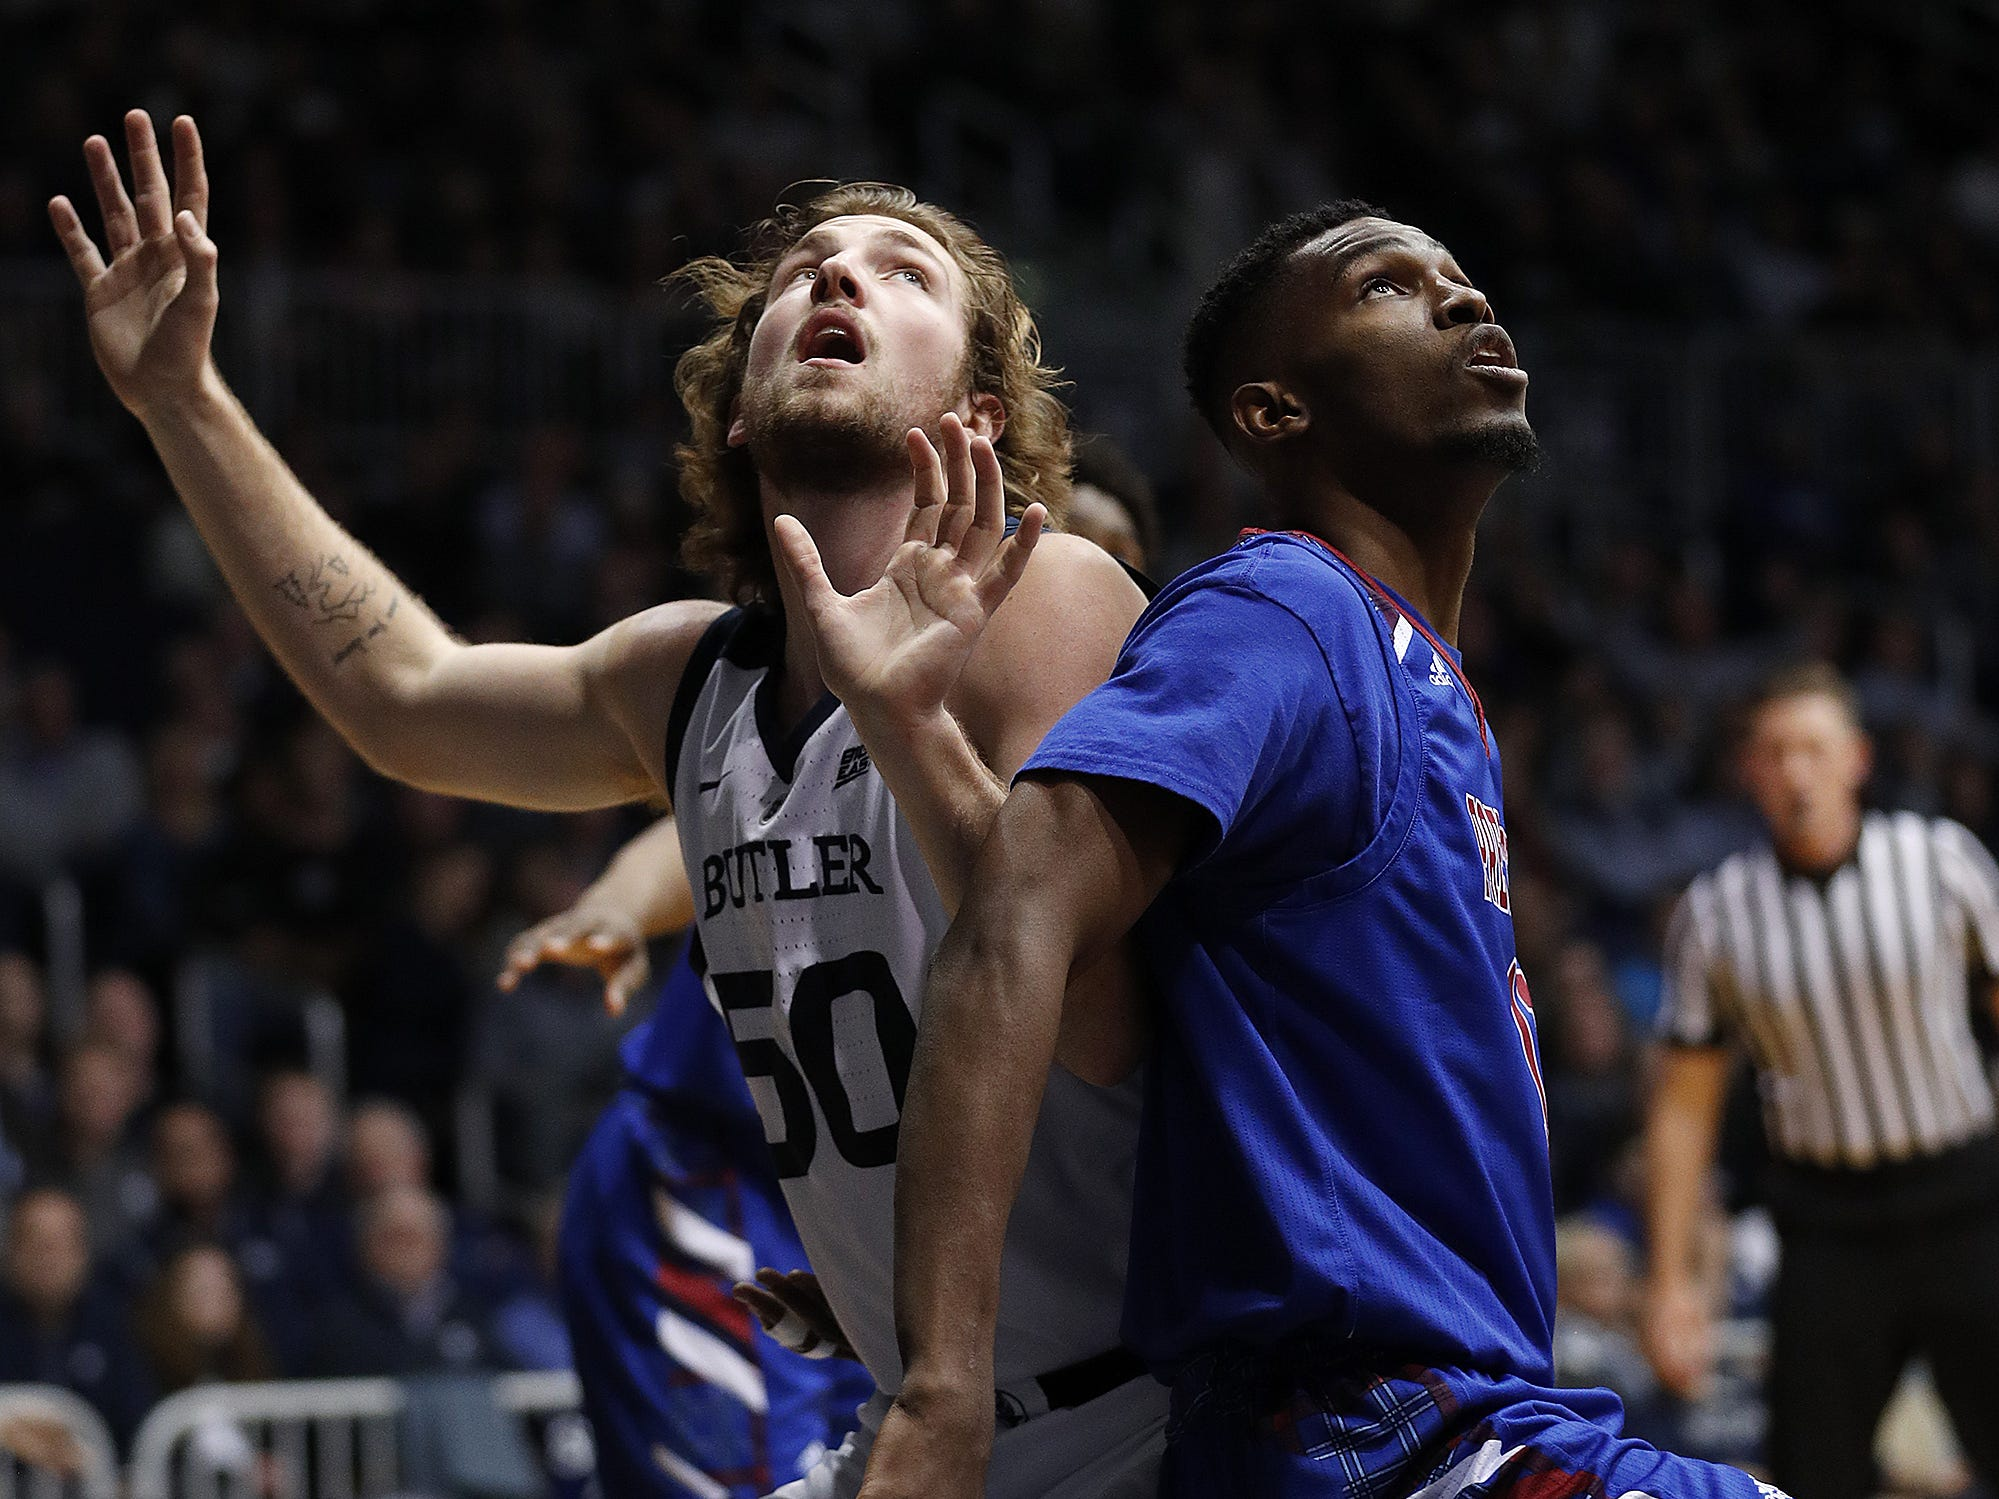 Butler Bulldogs forward Joey Brunk (50) and Presbyterian Blue Hose center Armel TeTe (11) fight for position for a rebound in the first half of their game at Hinkle Fieldhouse on Monday, Dec. 18, 2018.